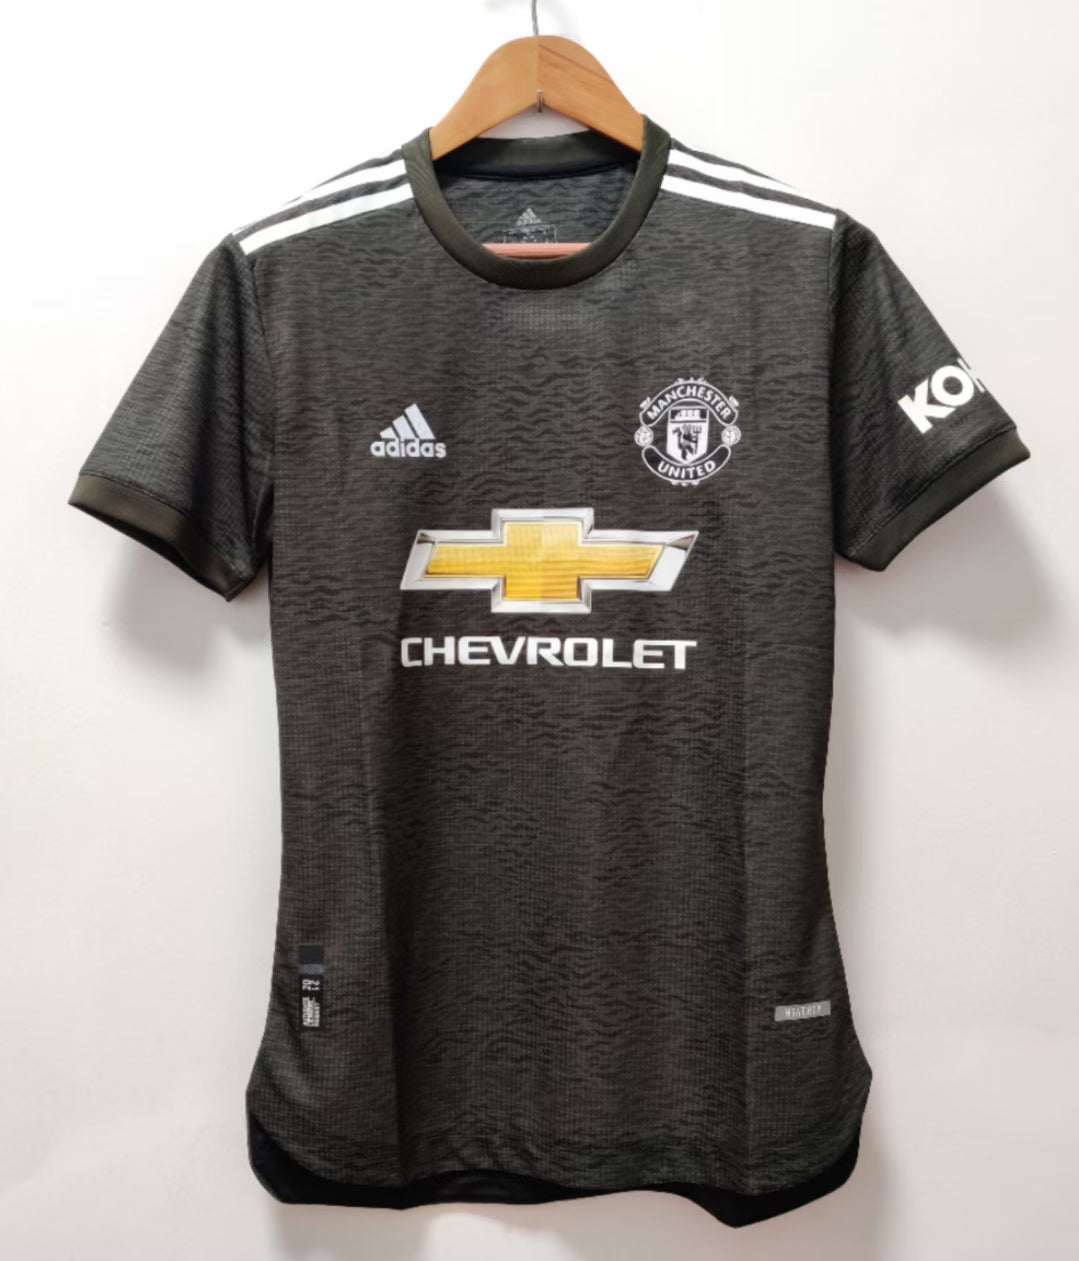 <Manchester United Away 20/21 Player's Version>